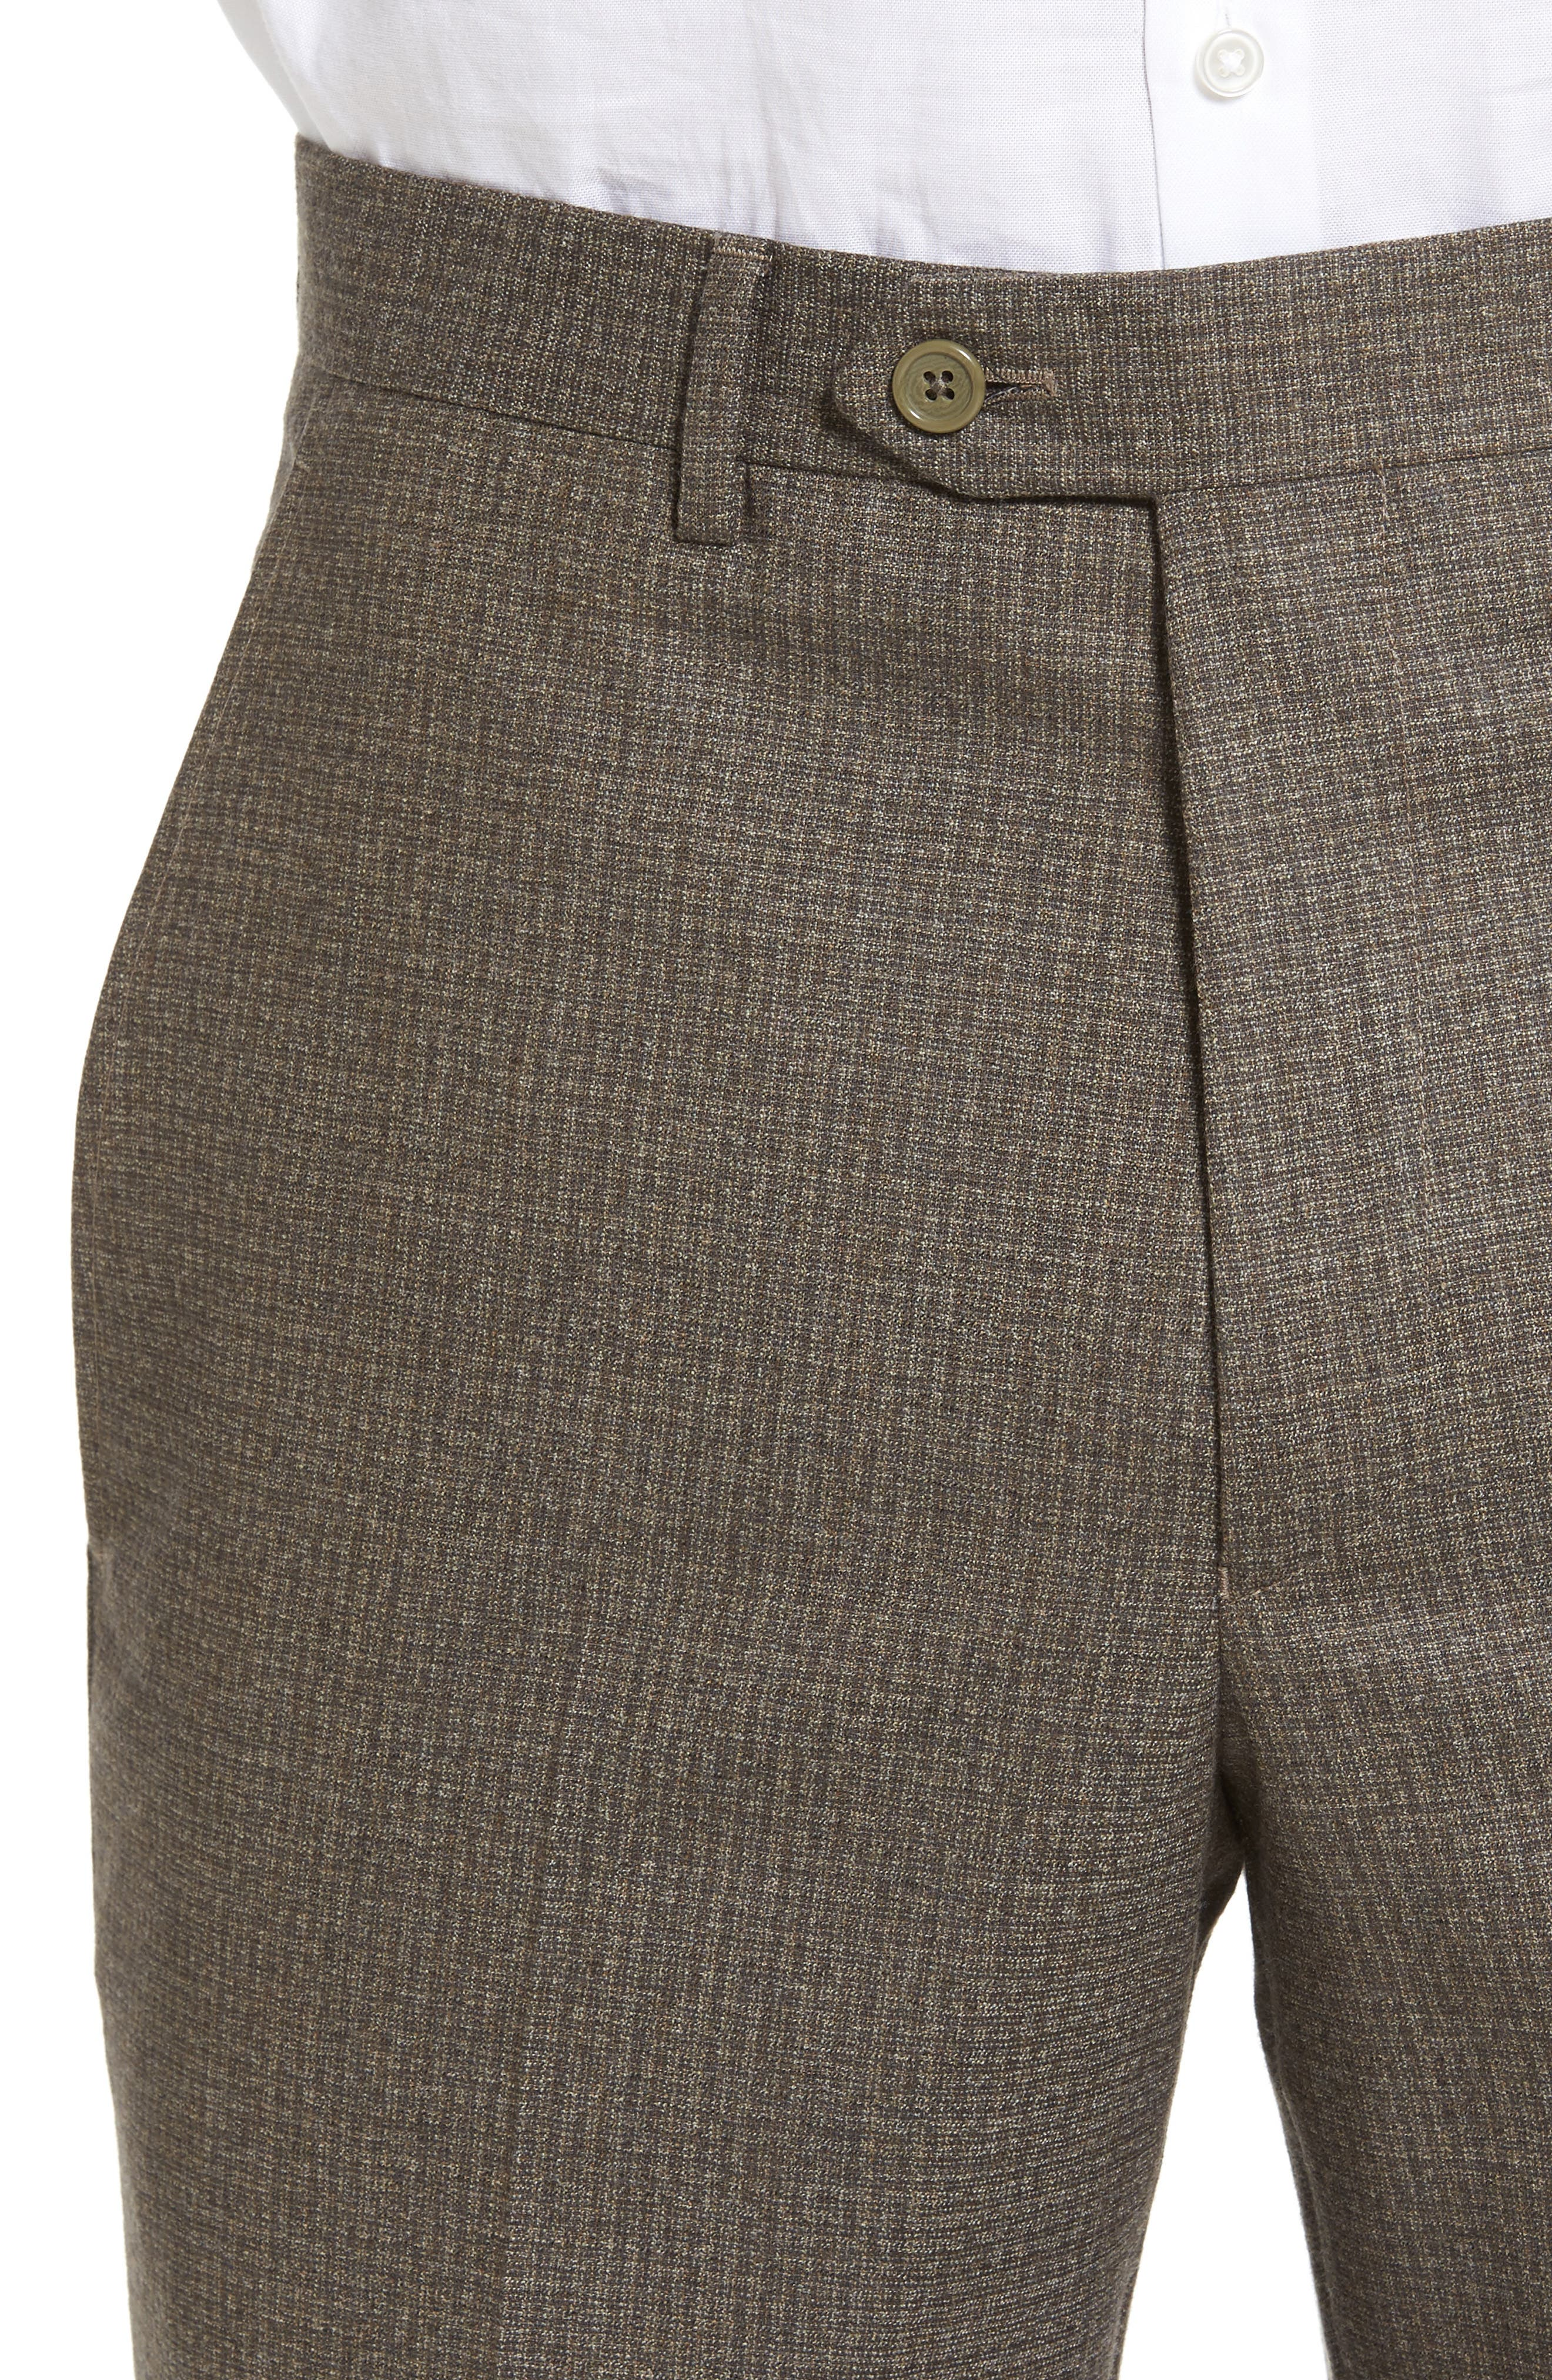 Romero Regular Fit Flat Front Trousers,                             Alternate thumbnail 4, color,                             Taupe